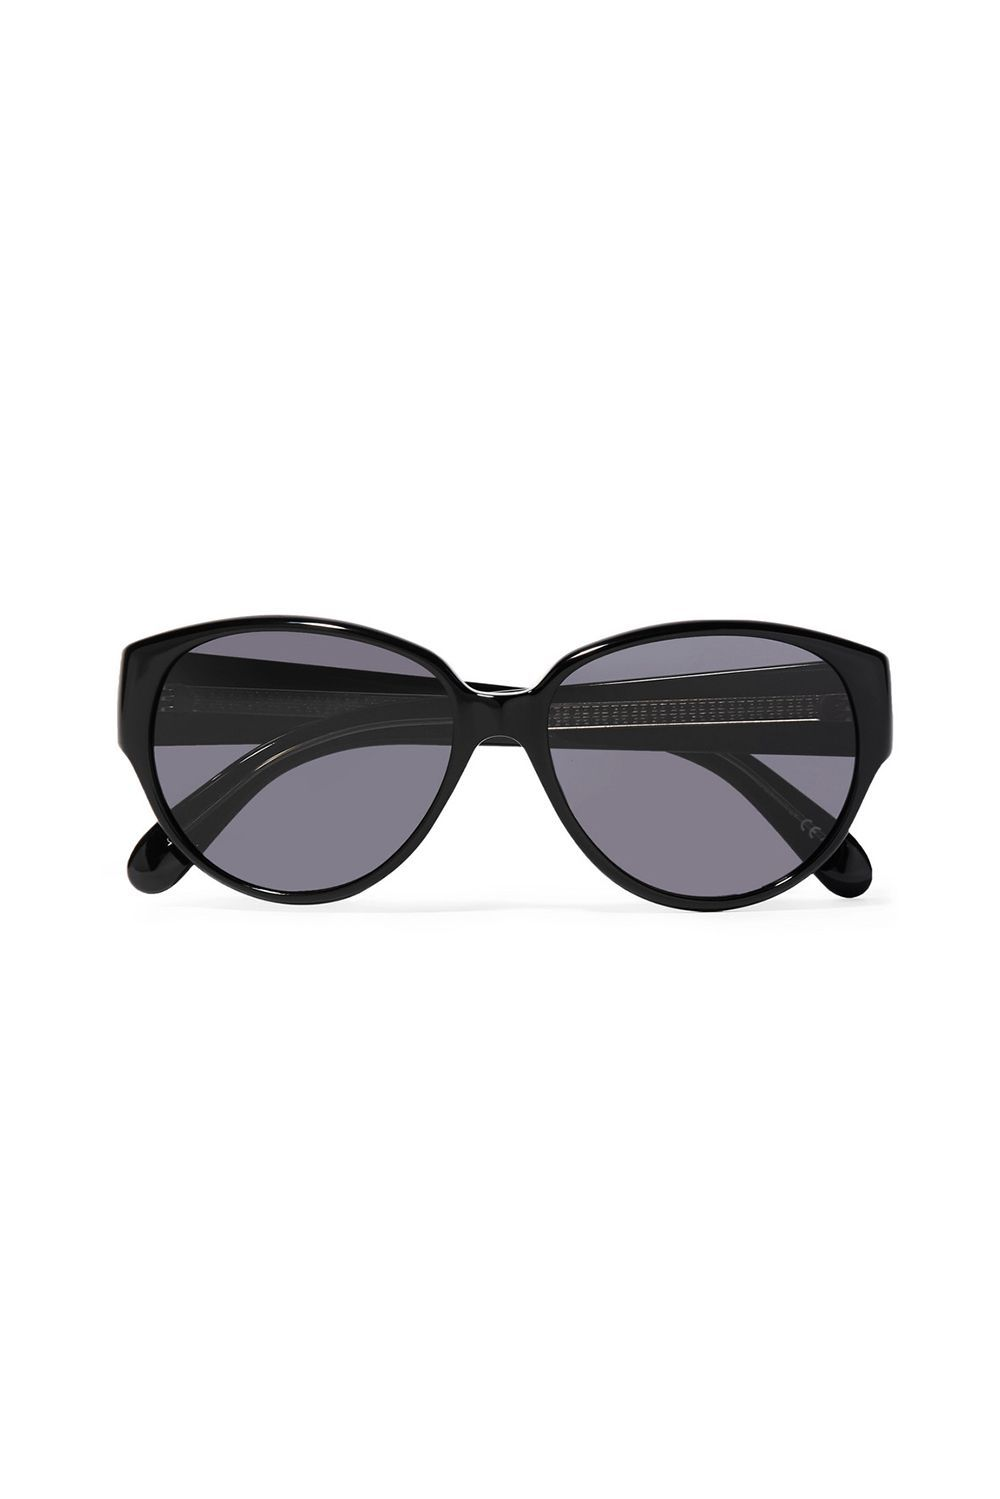 ba606ac9a7d 21 Best Sunglasses for Women 2019 - Cute Sunglasses for Women